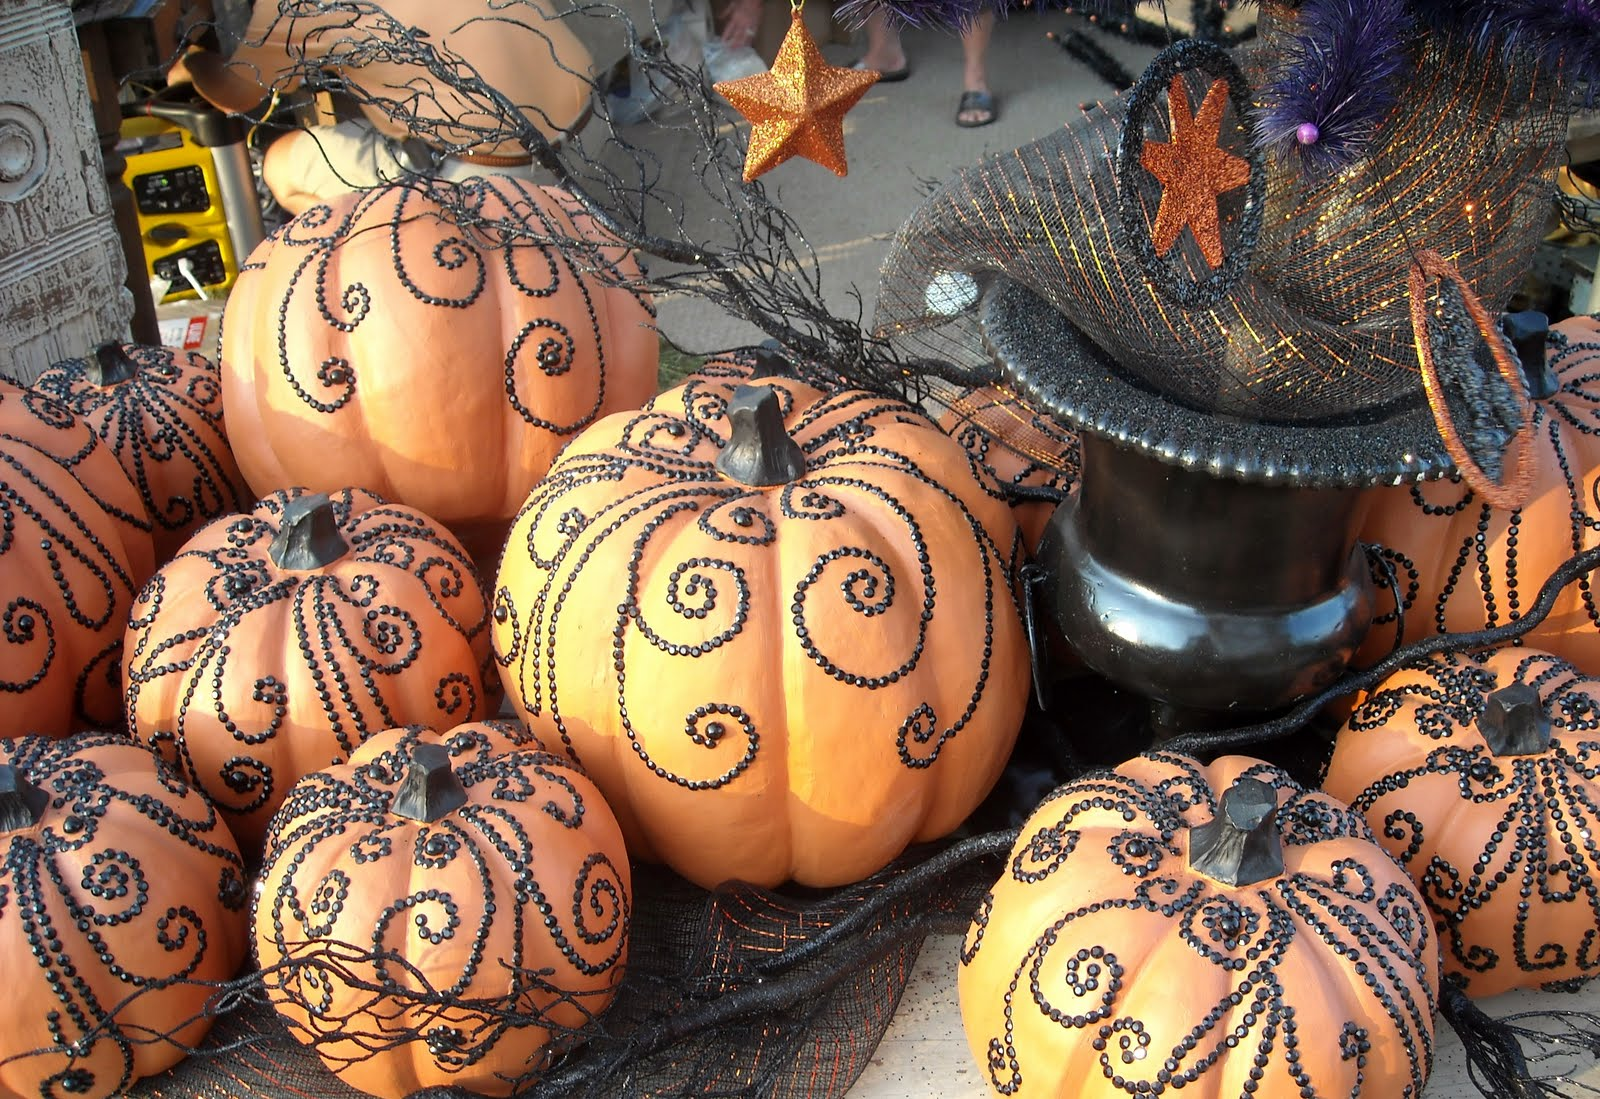 Decorate Pumpkins Like a Pro - Decorate Pumpkins Without Carving